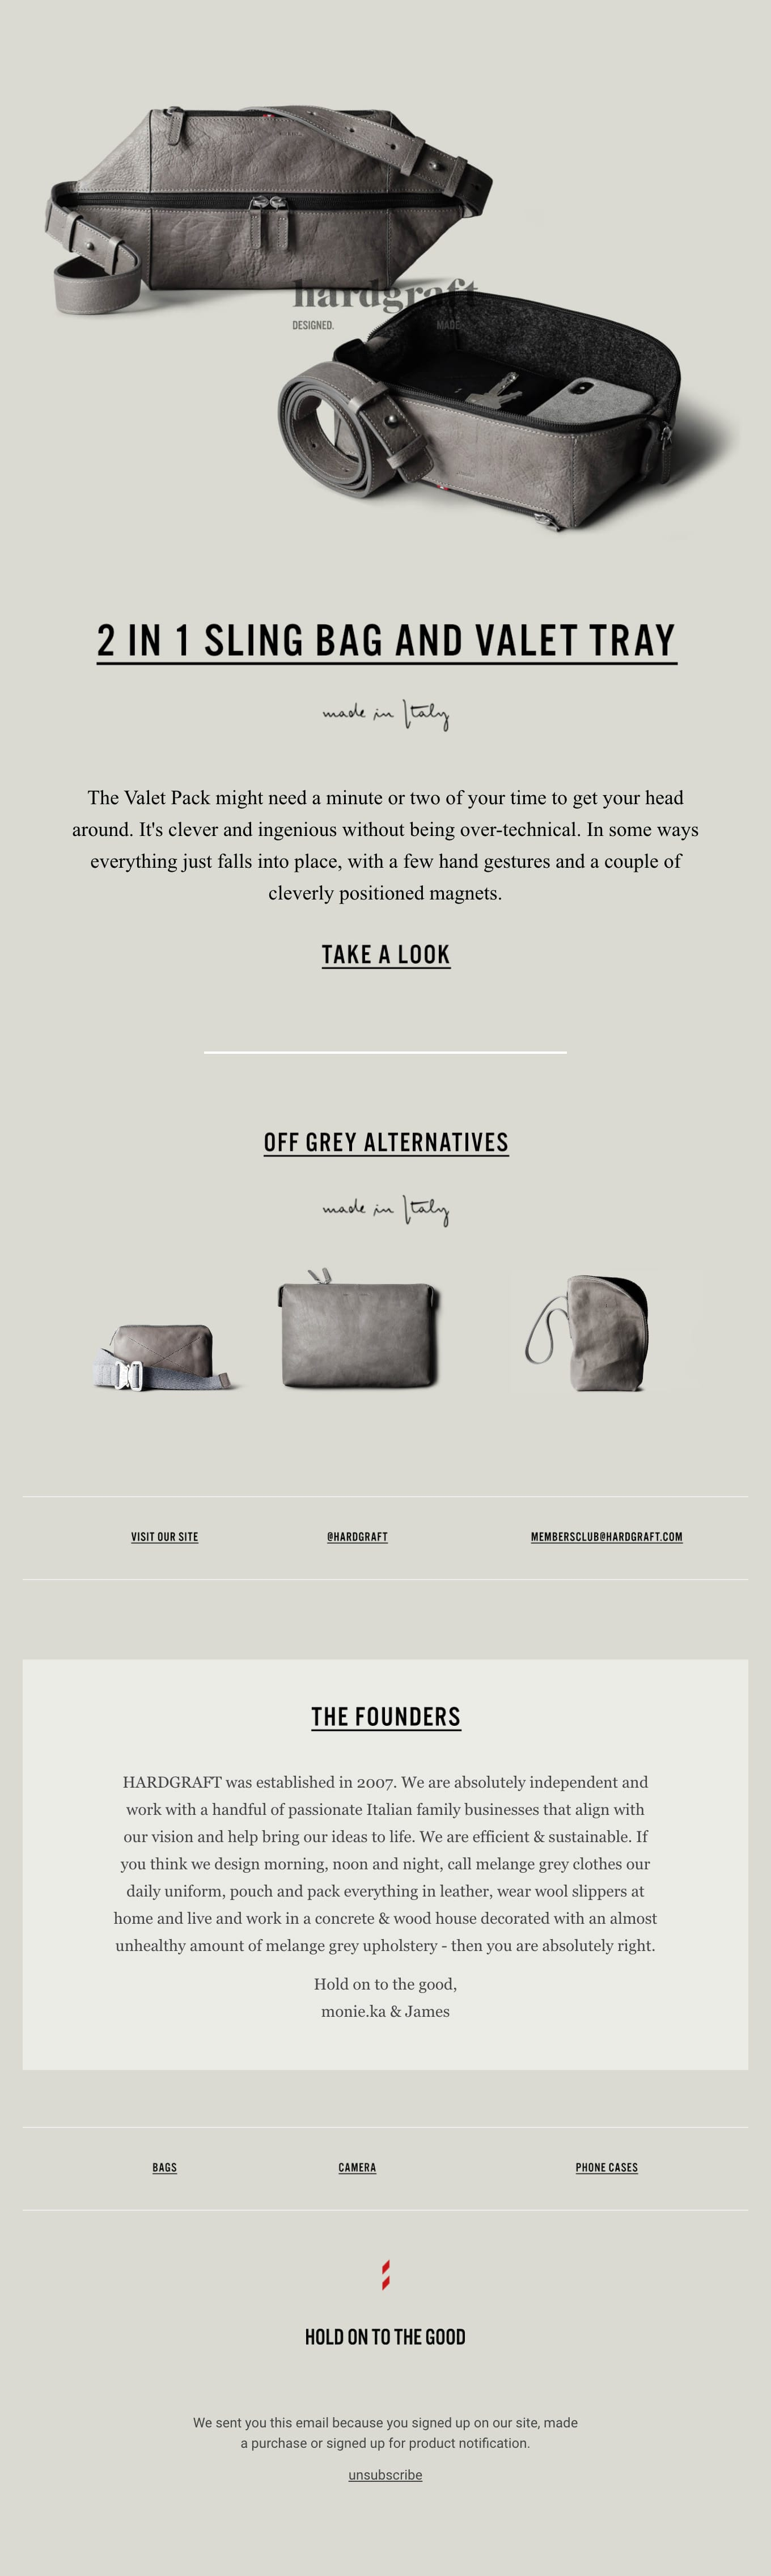 2 in 1 Sling Bag and Valet Tray Email Screenshot